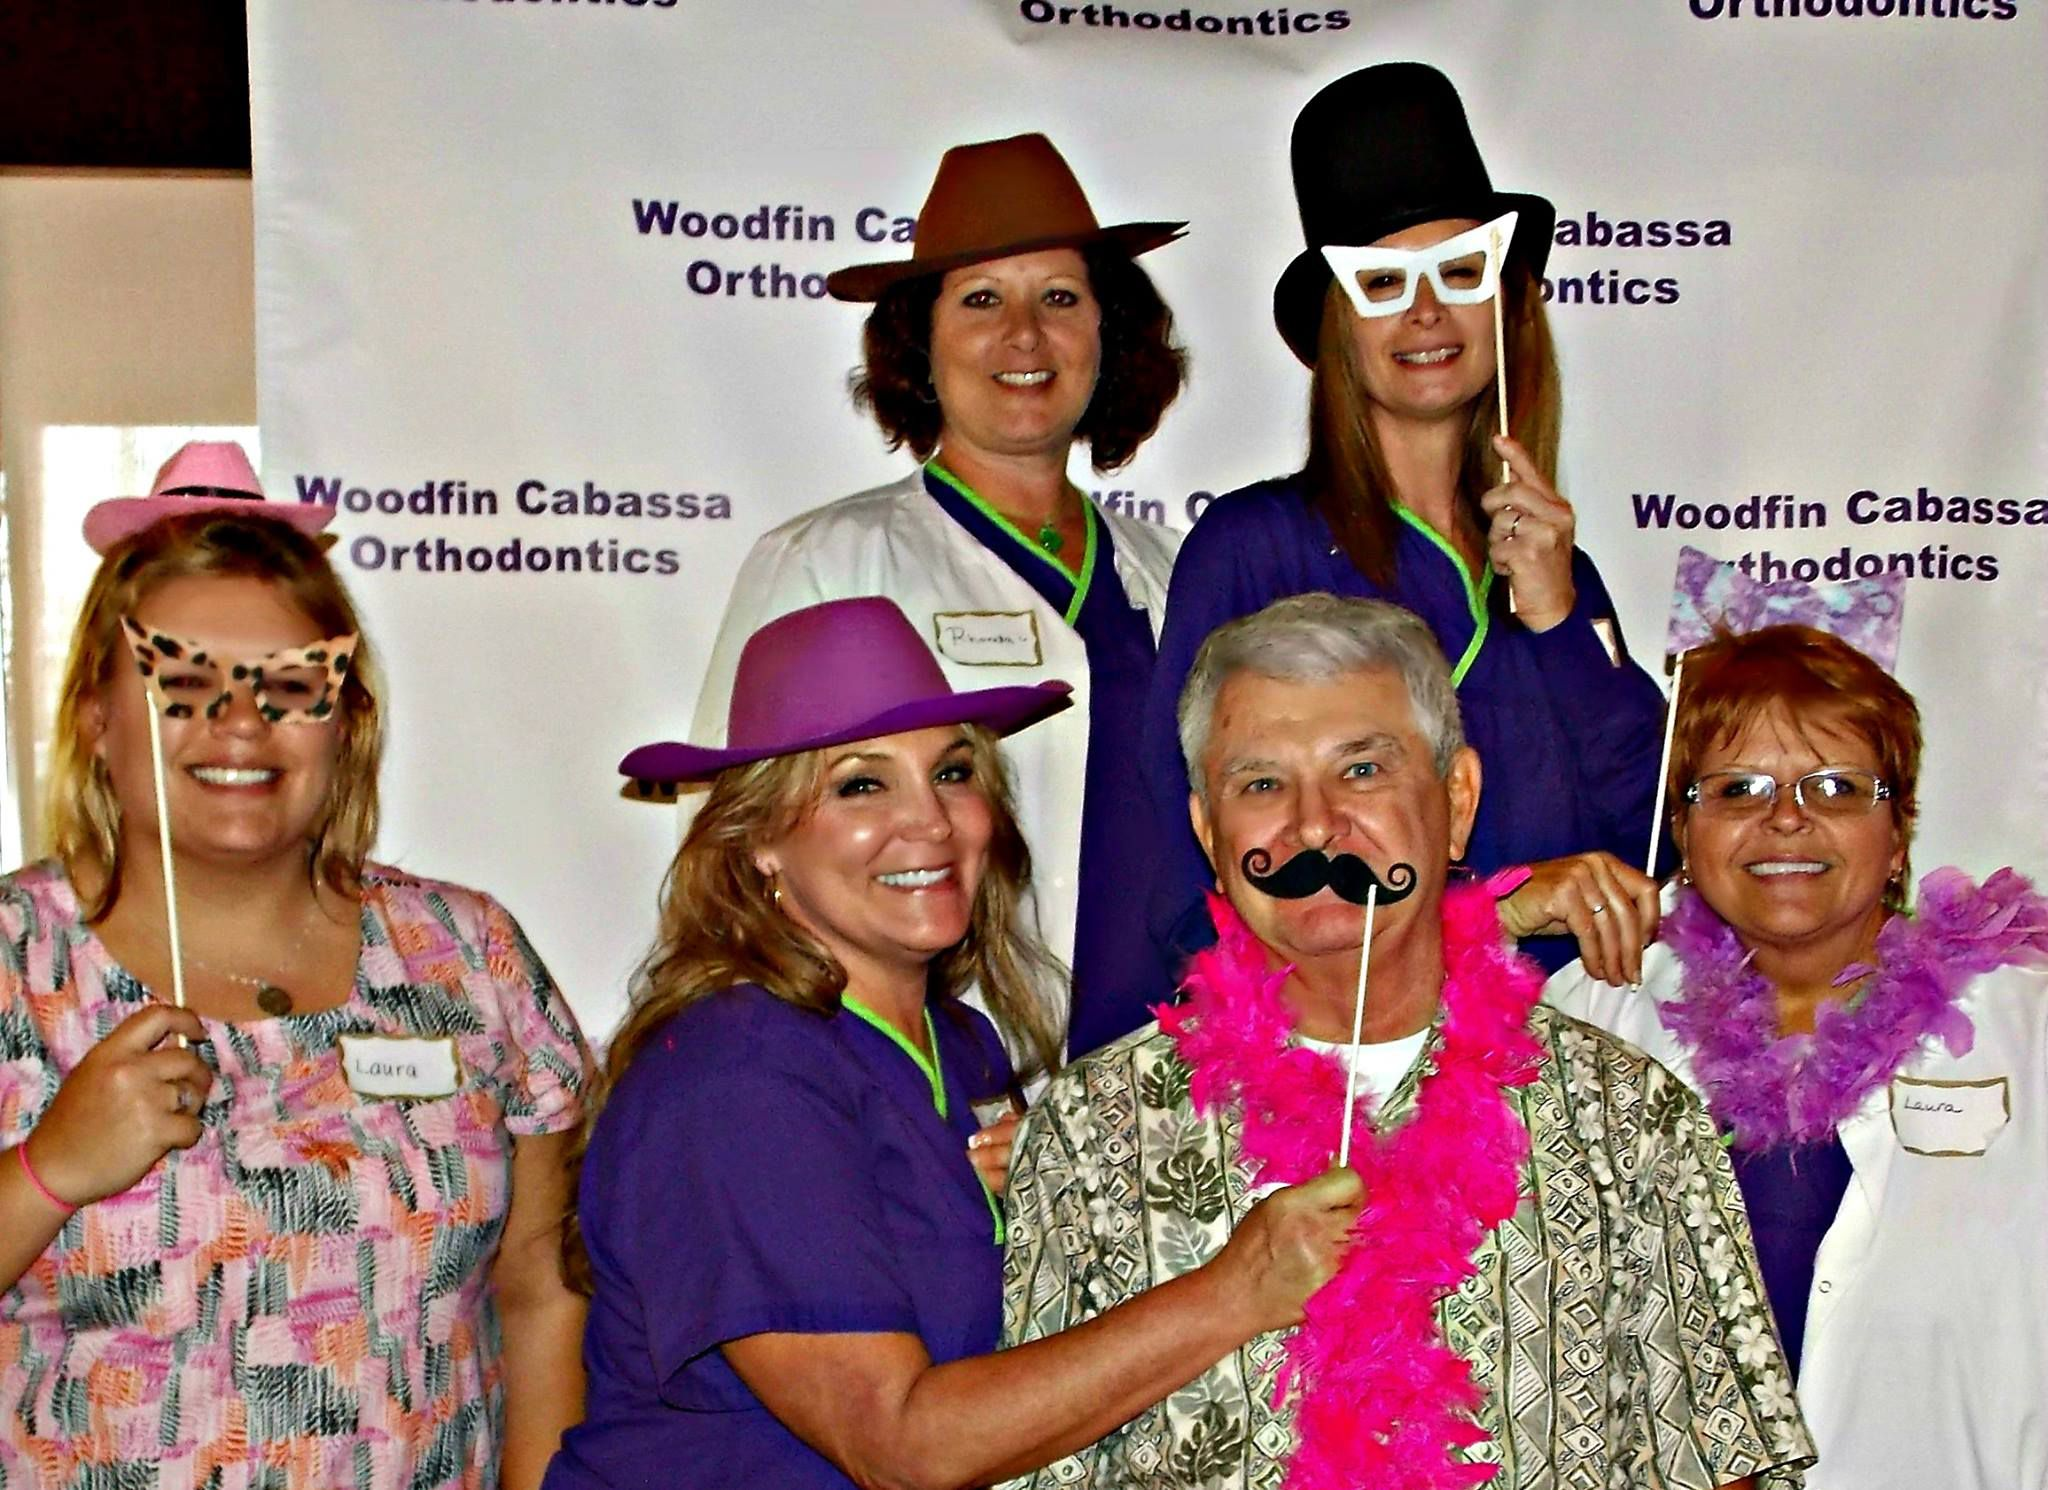 Dr. Lance Washburn and staff with photobooth props